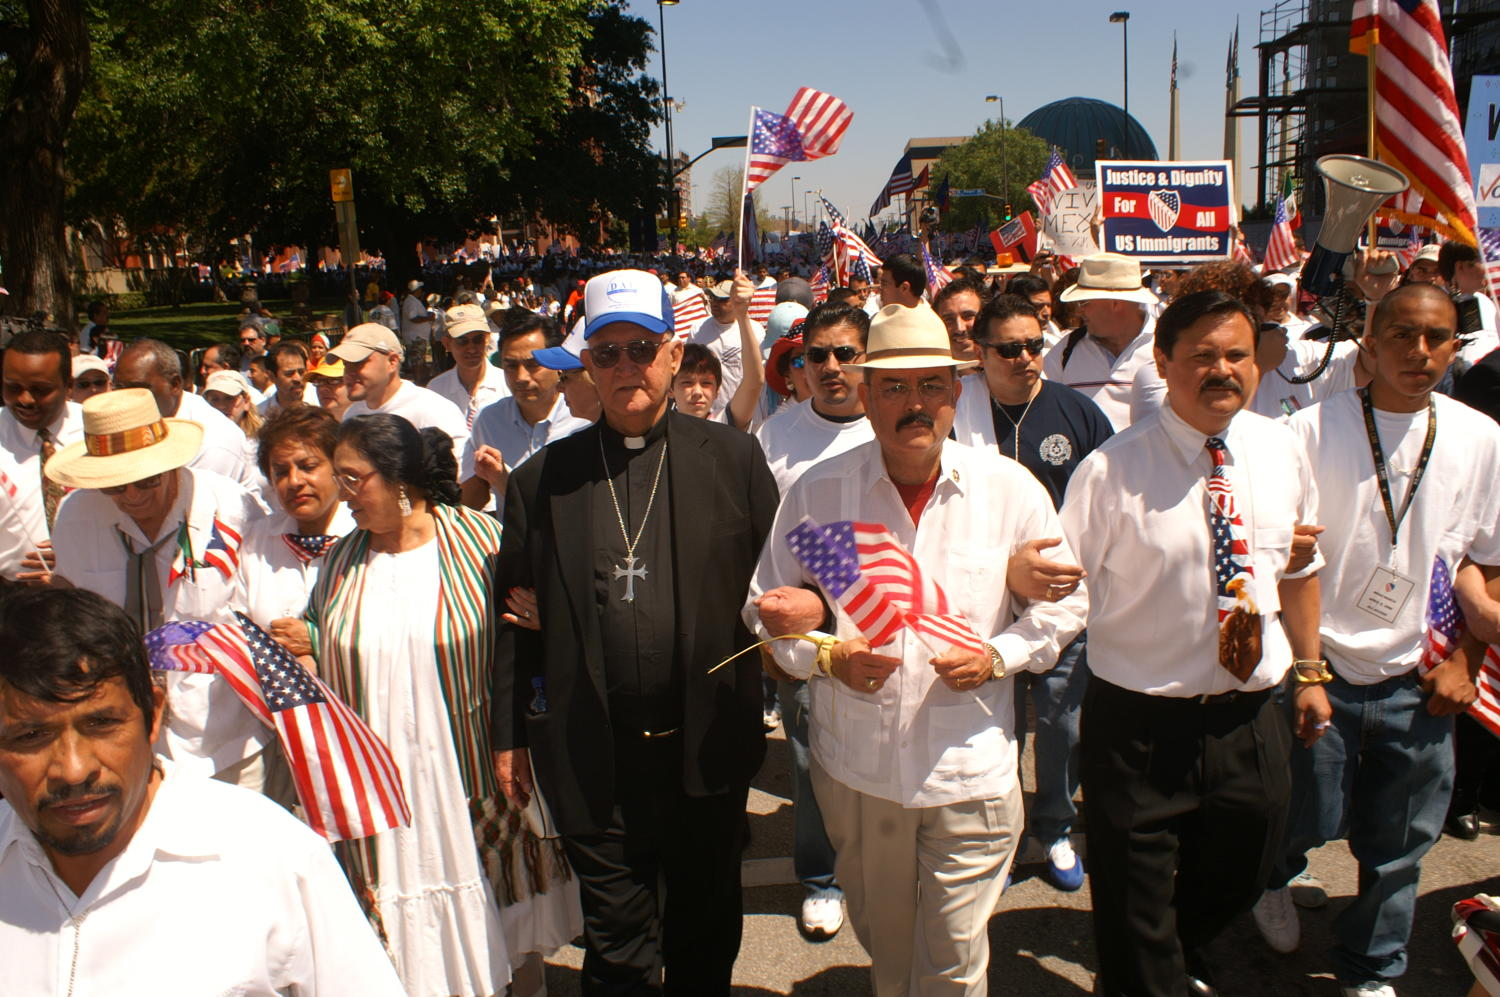 [Immigration protesters march with priest]                                                                                                      [Sequence #]: 1 of 1